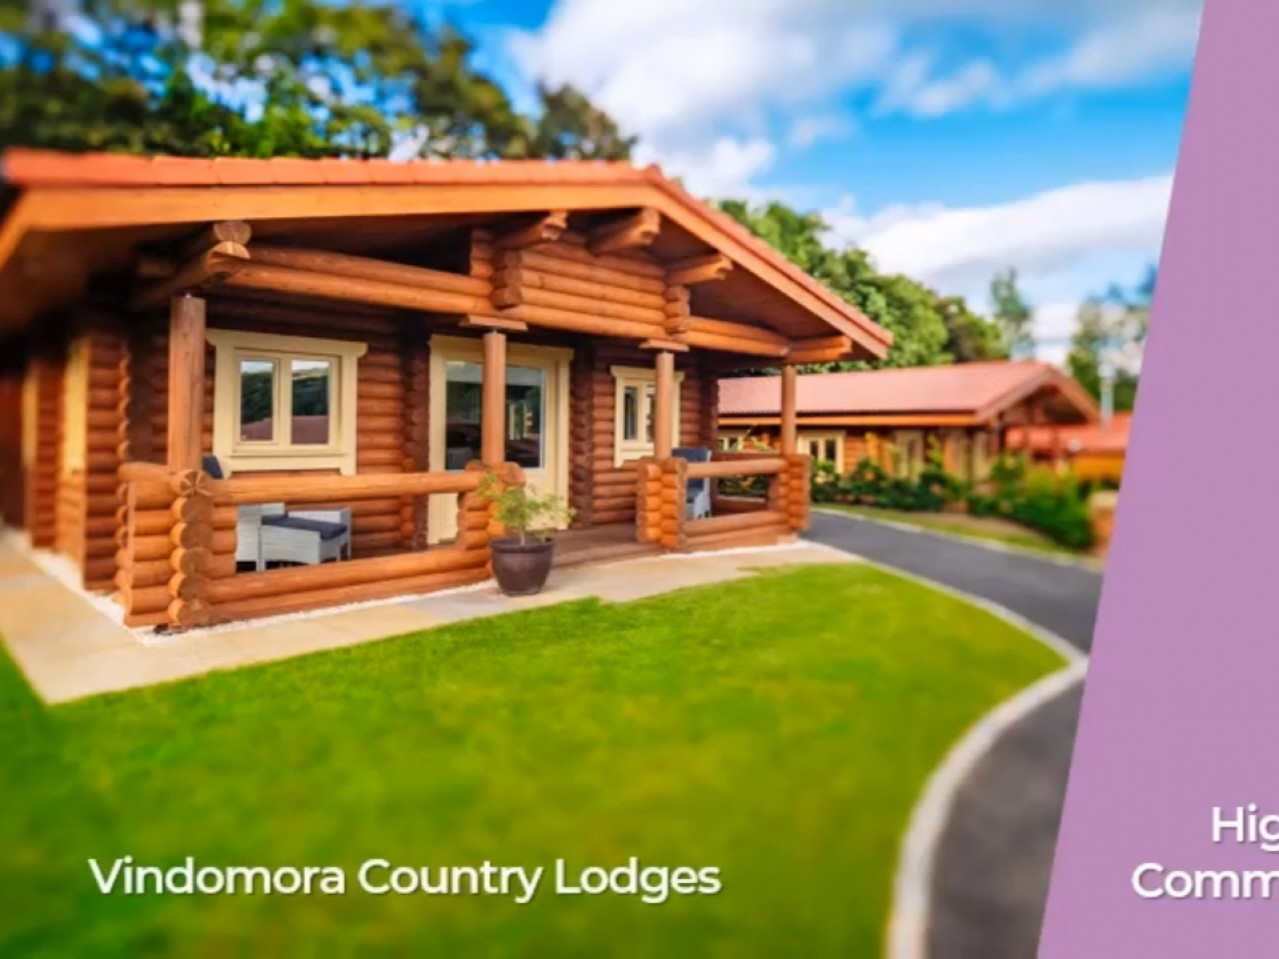 Chesters Lodge At Vindomora Country Lodges